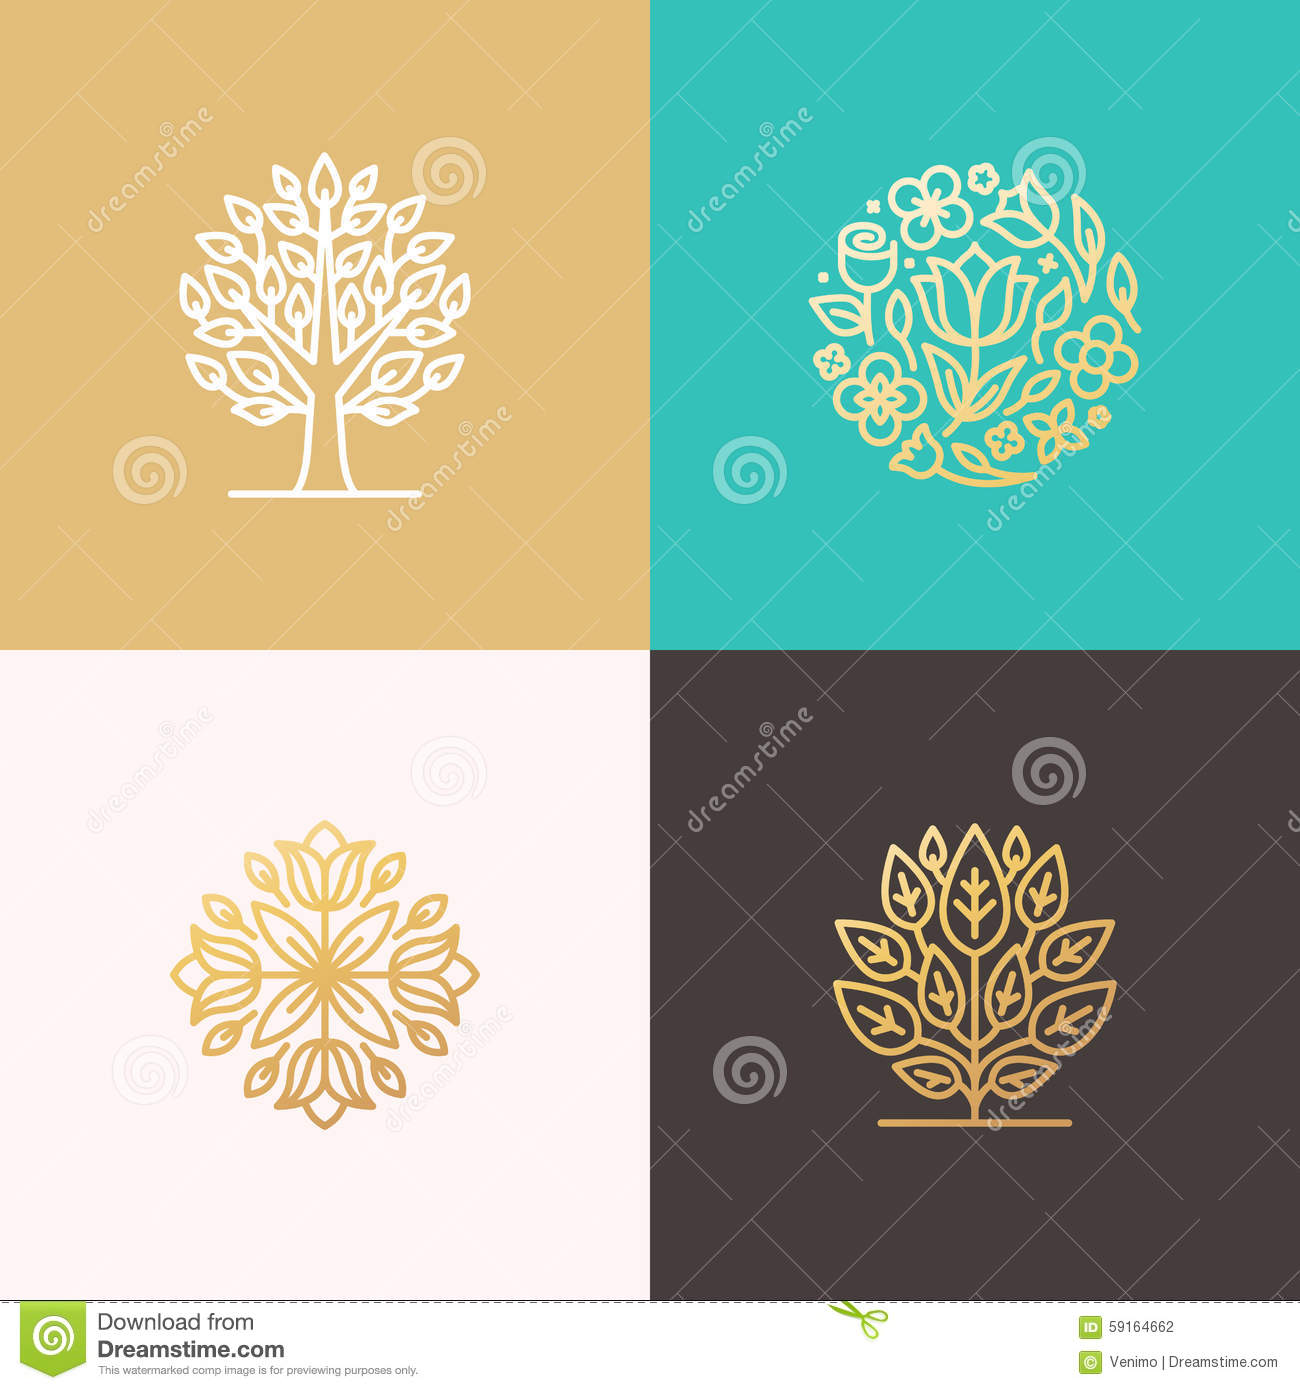 Rose Flower Logo With Circle Badge Template: Florist And Landscape Designers Logos Stock Vector